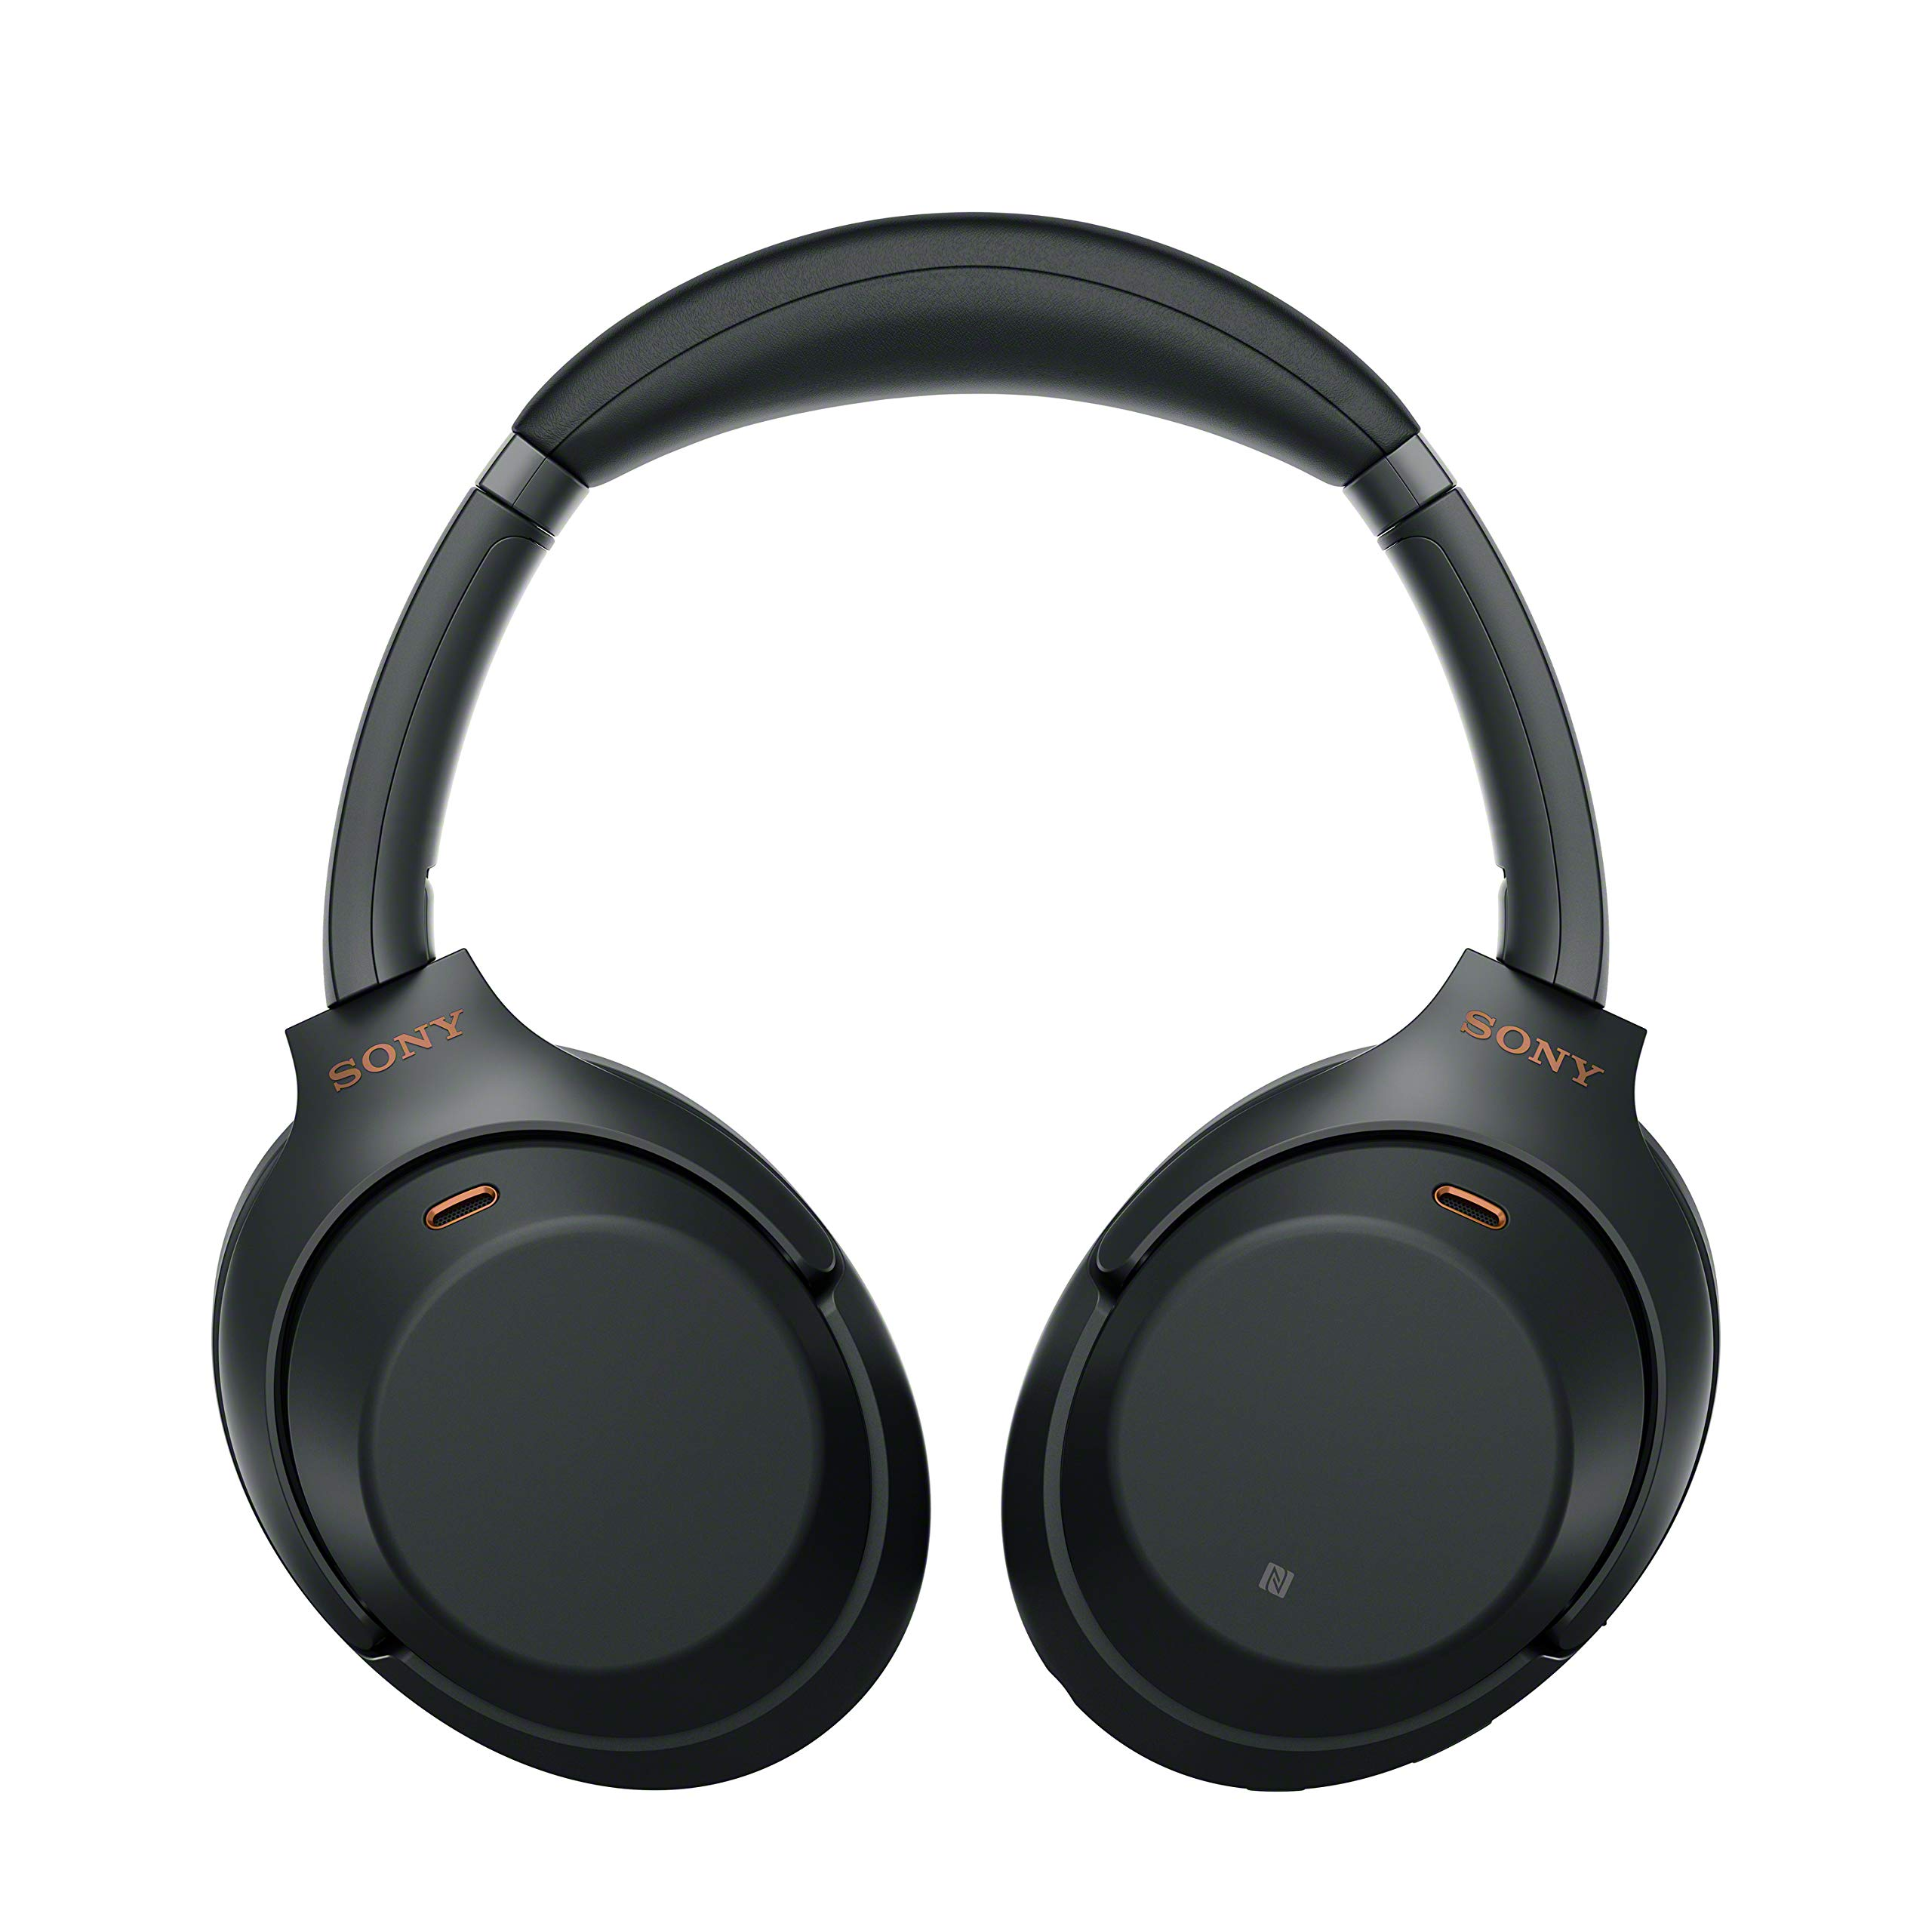 Sony WH1000XM3 Bluetooth Wireless Noise Canceling Headphones, Black WH-1000XM3/B (Renewed) by Sony (Image #3)